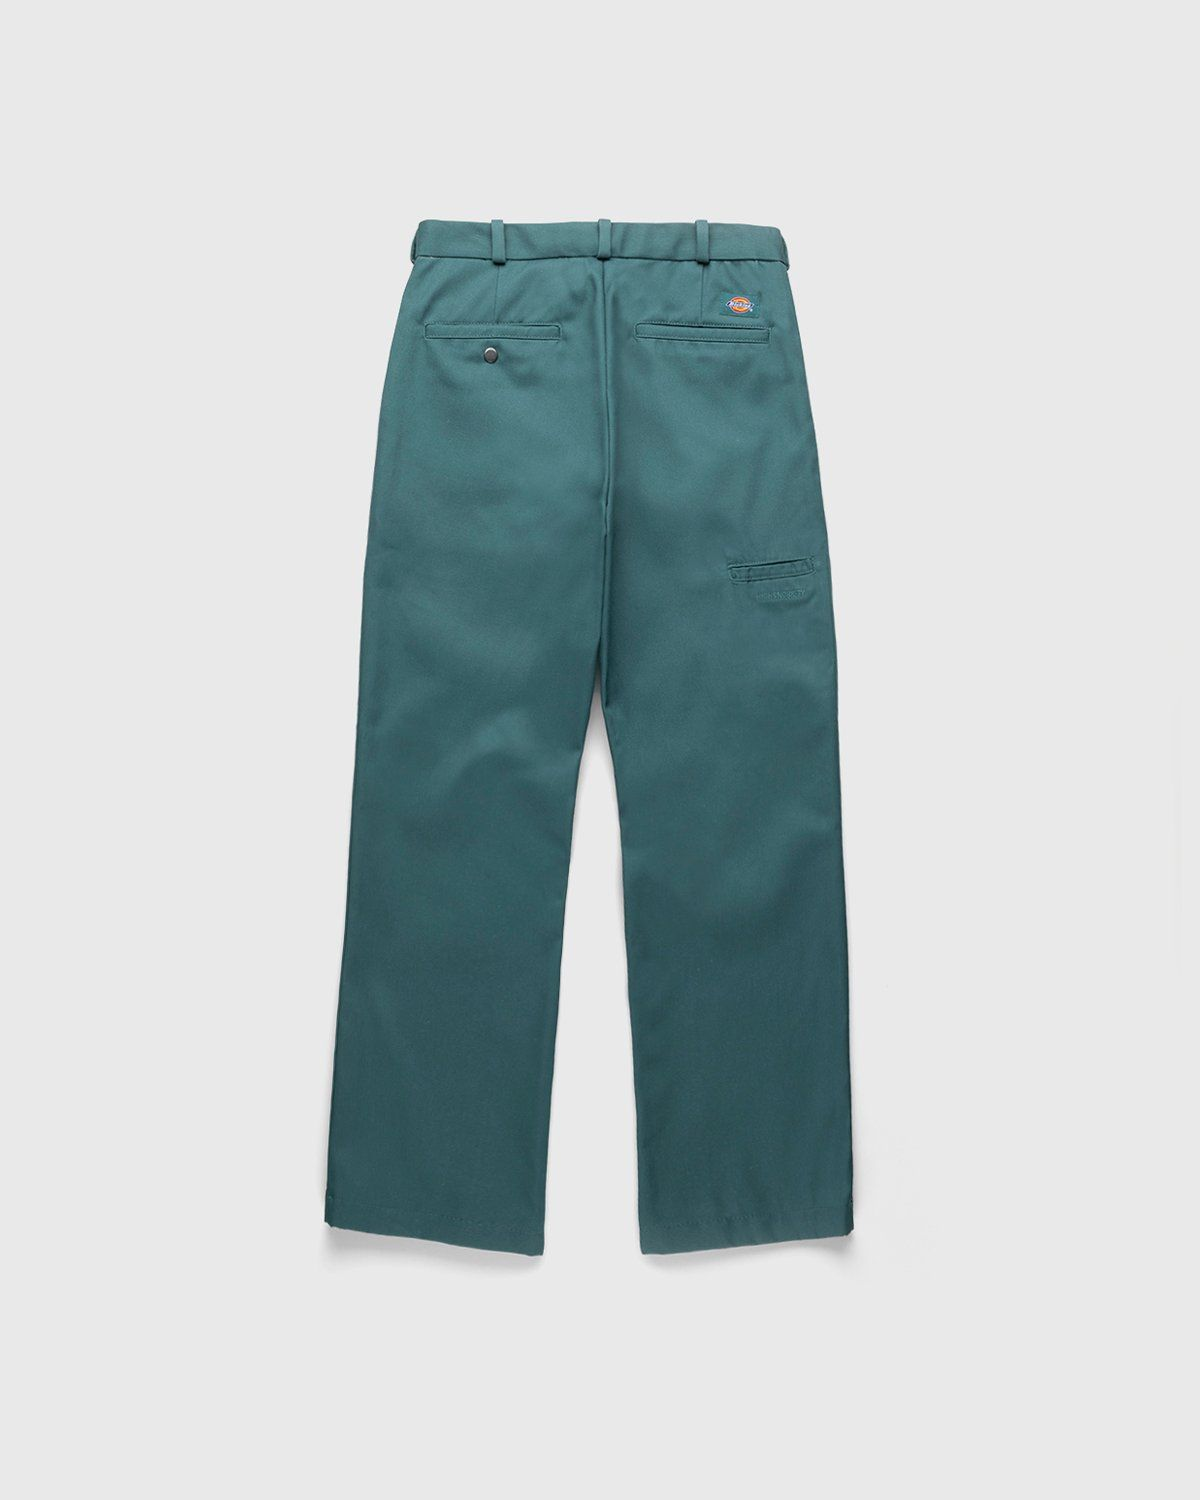 Highsnobiety x Dickies – Pleated Work Pants Lincoln Green - Image 2